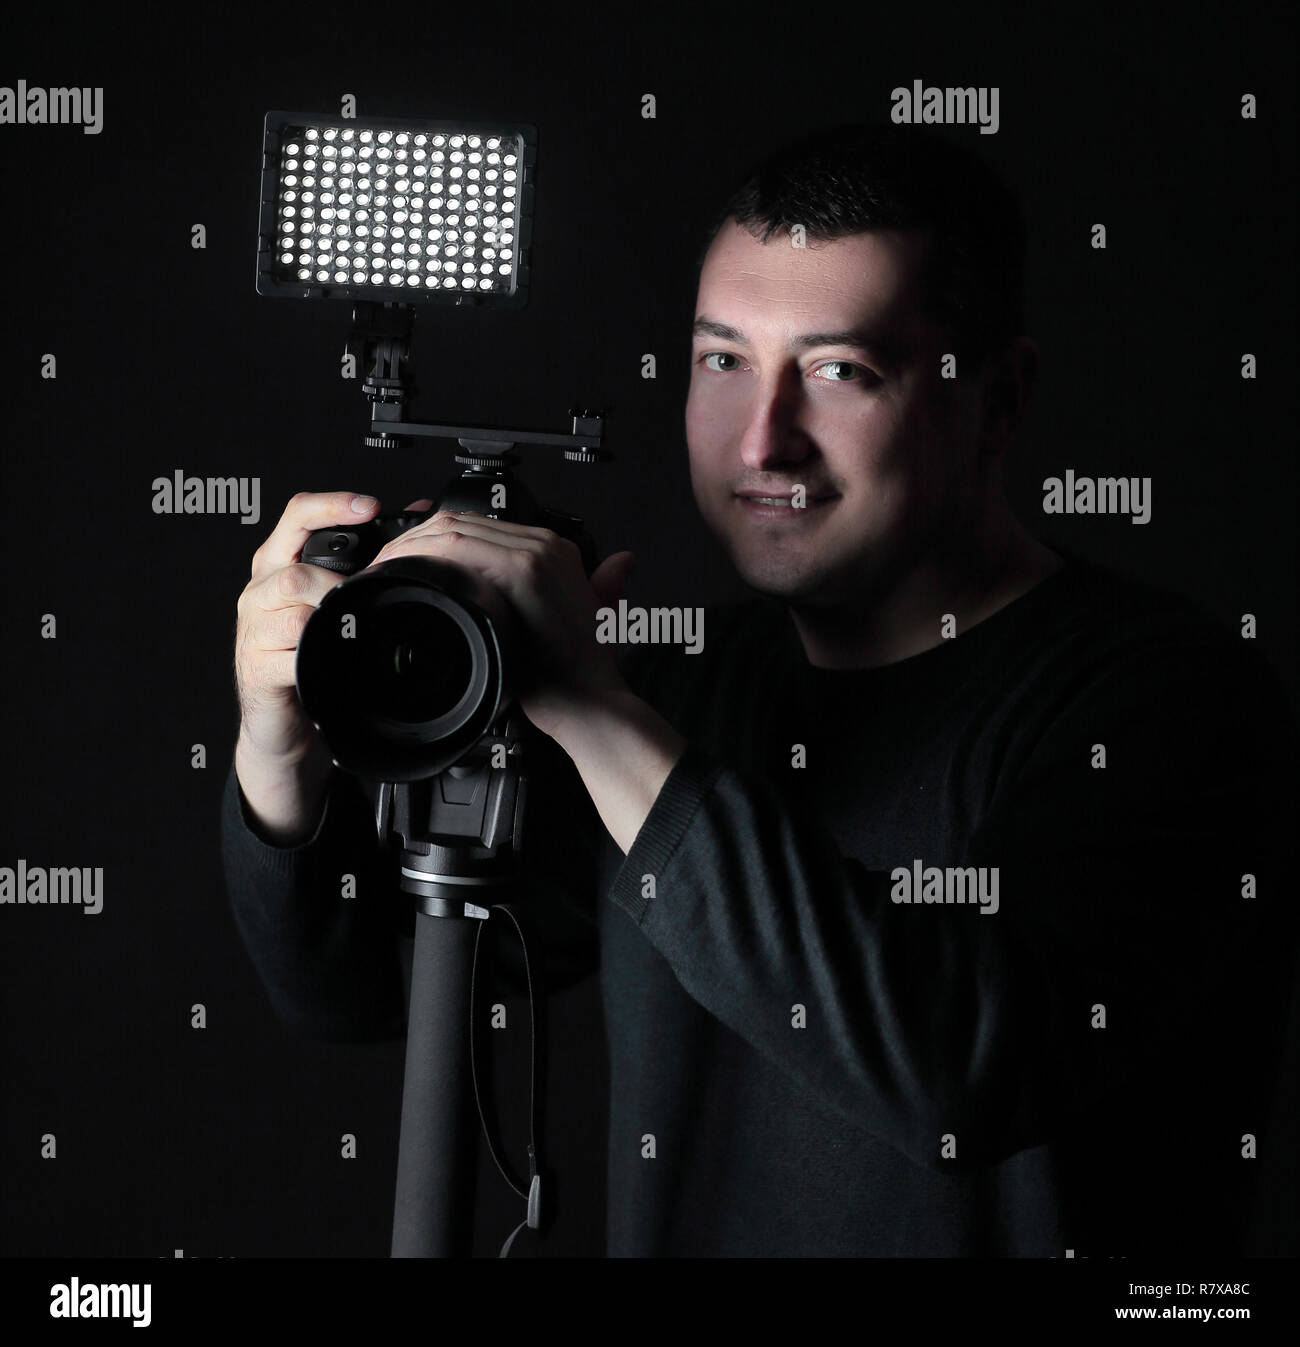 professional photographer with camera on tripod.isolated on black background - Stock Image